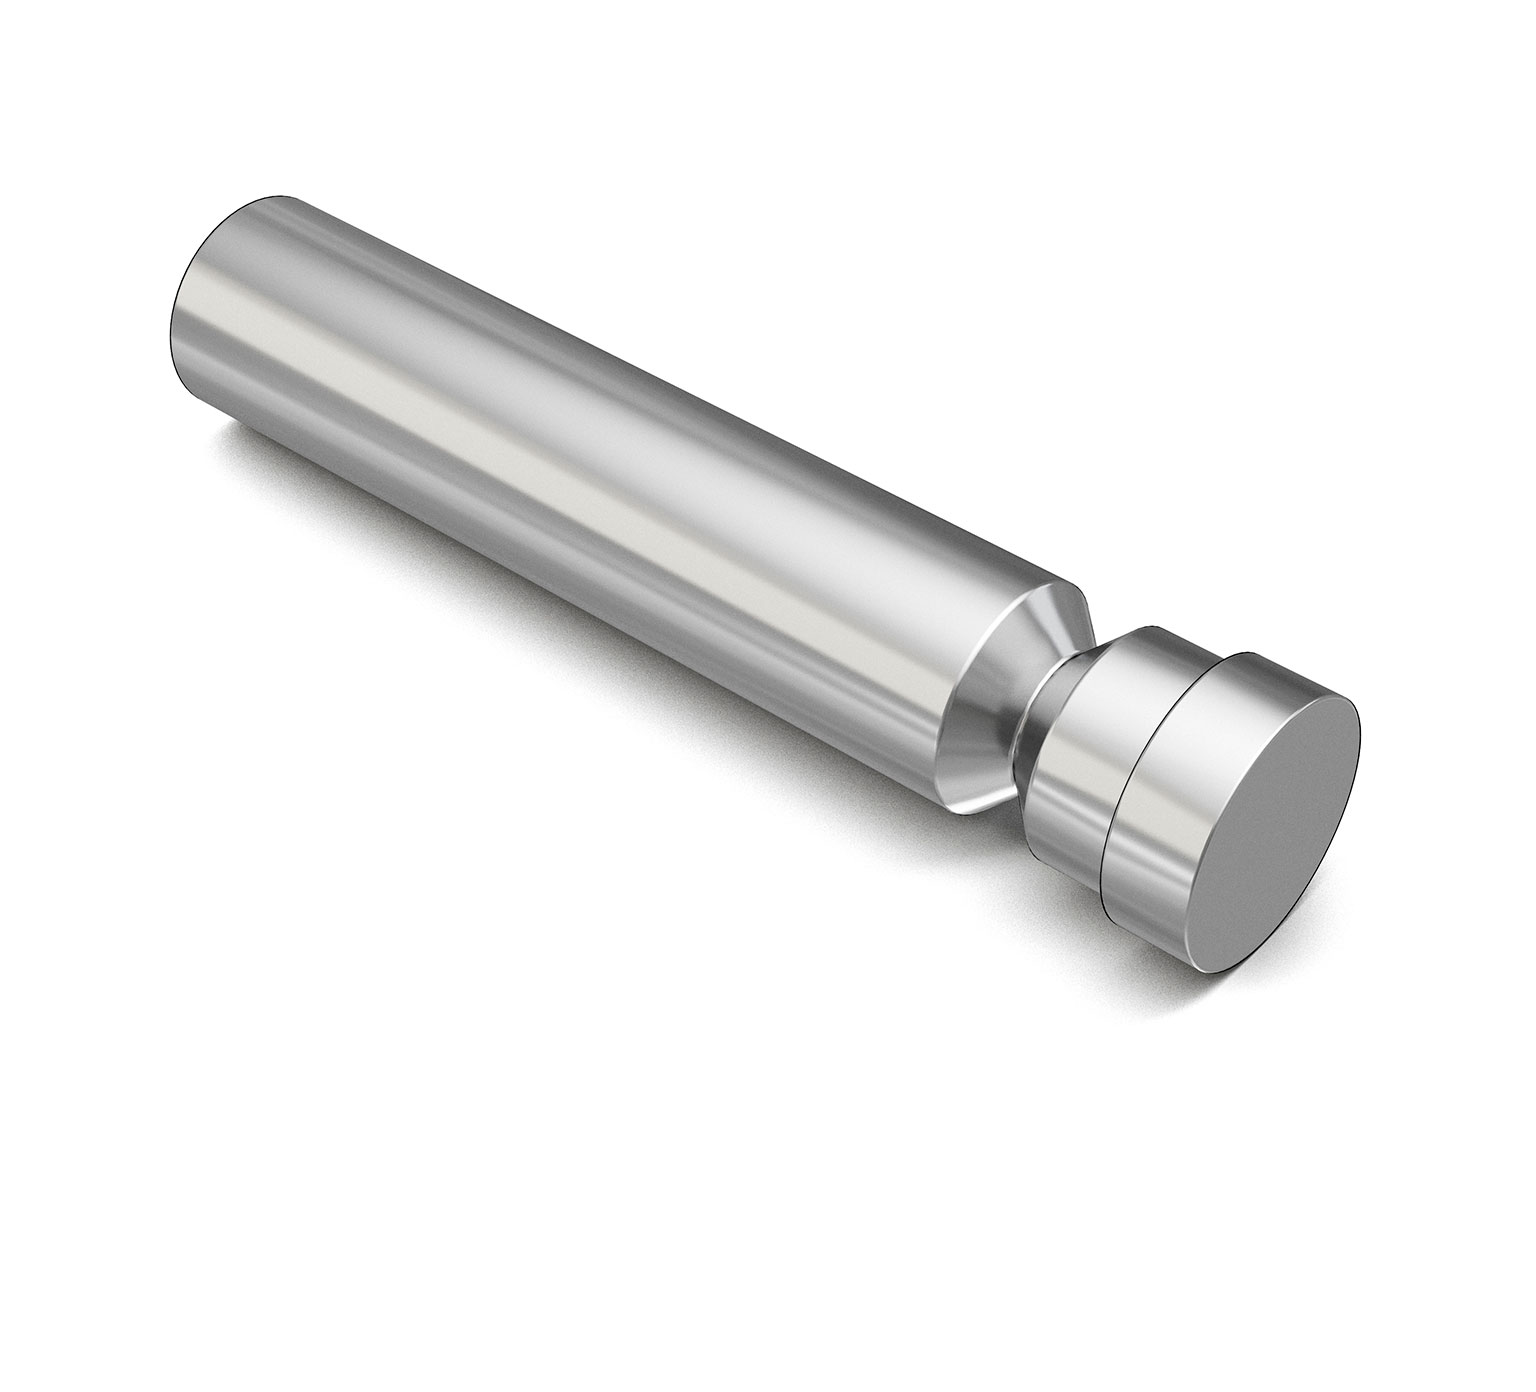 1037399 Stainless Steel Pin - 0.374 x 1.78 in alt 1